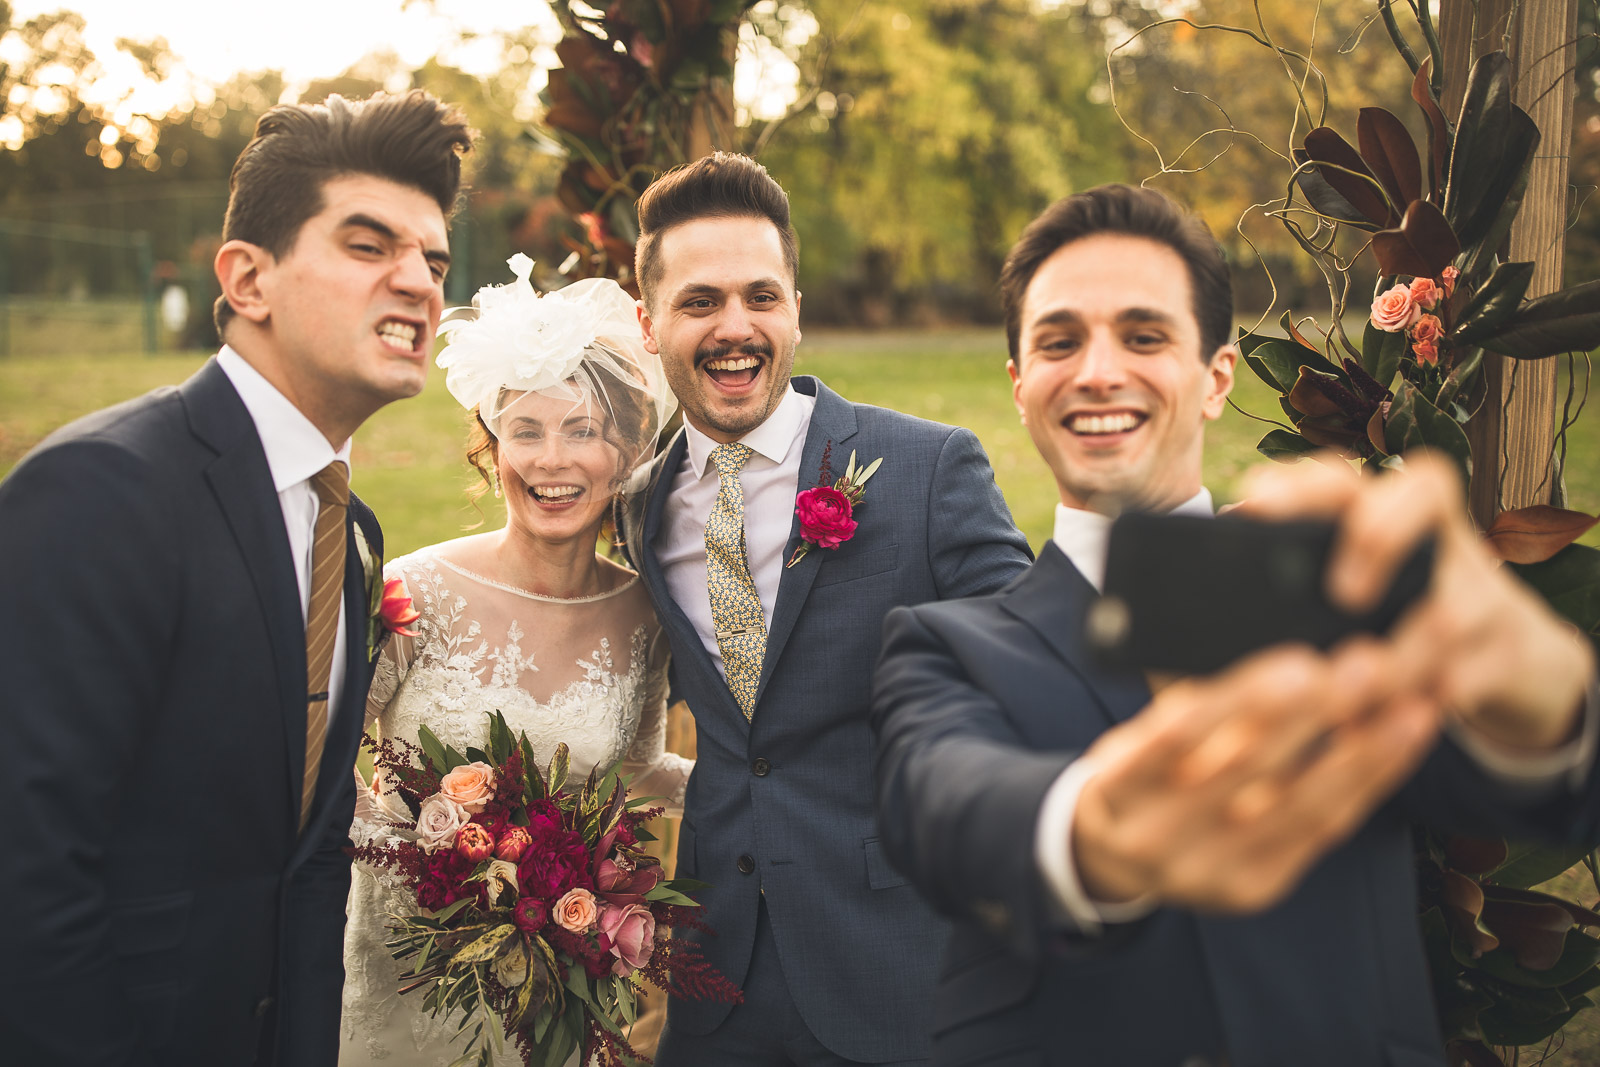 Brothers take a selfie on the wedding day